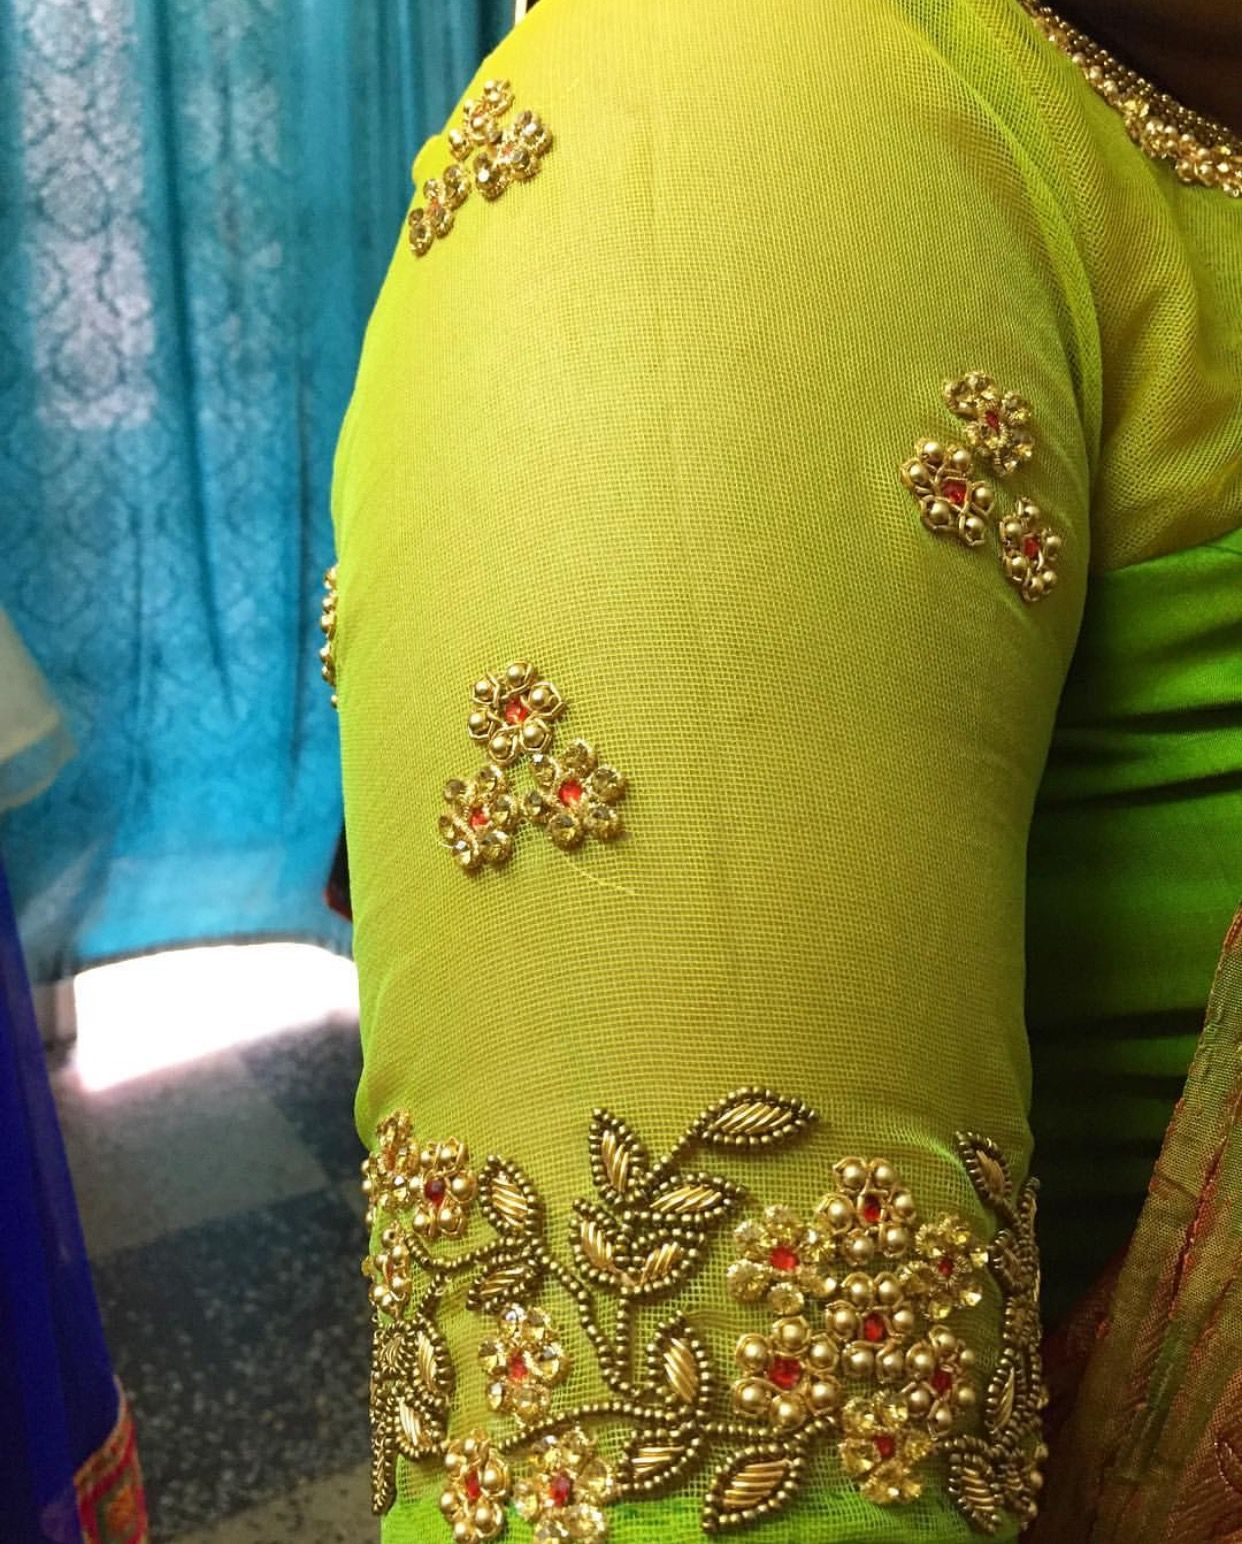 Pin by harika vodnala on blouses pinterest blouse designs hand embroidery indian blouse indian sarees indian designer wear indian designers embroidery stitches tutorial embroidery patterns bankloansurffo Images